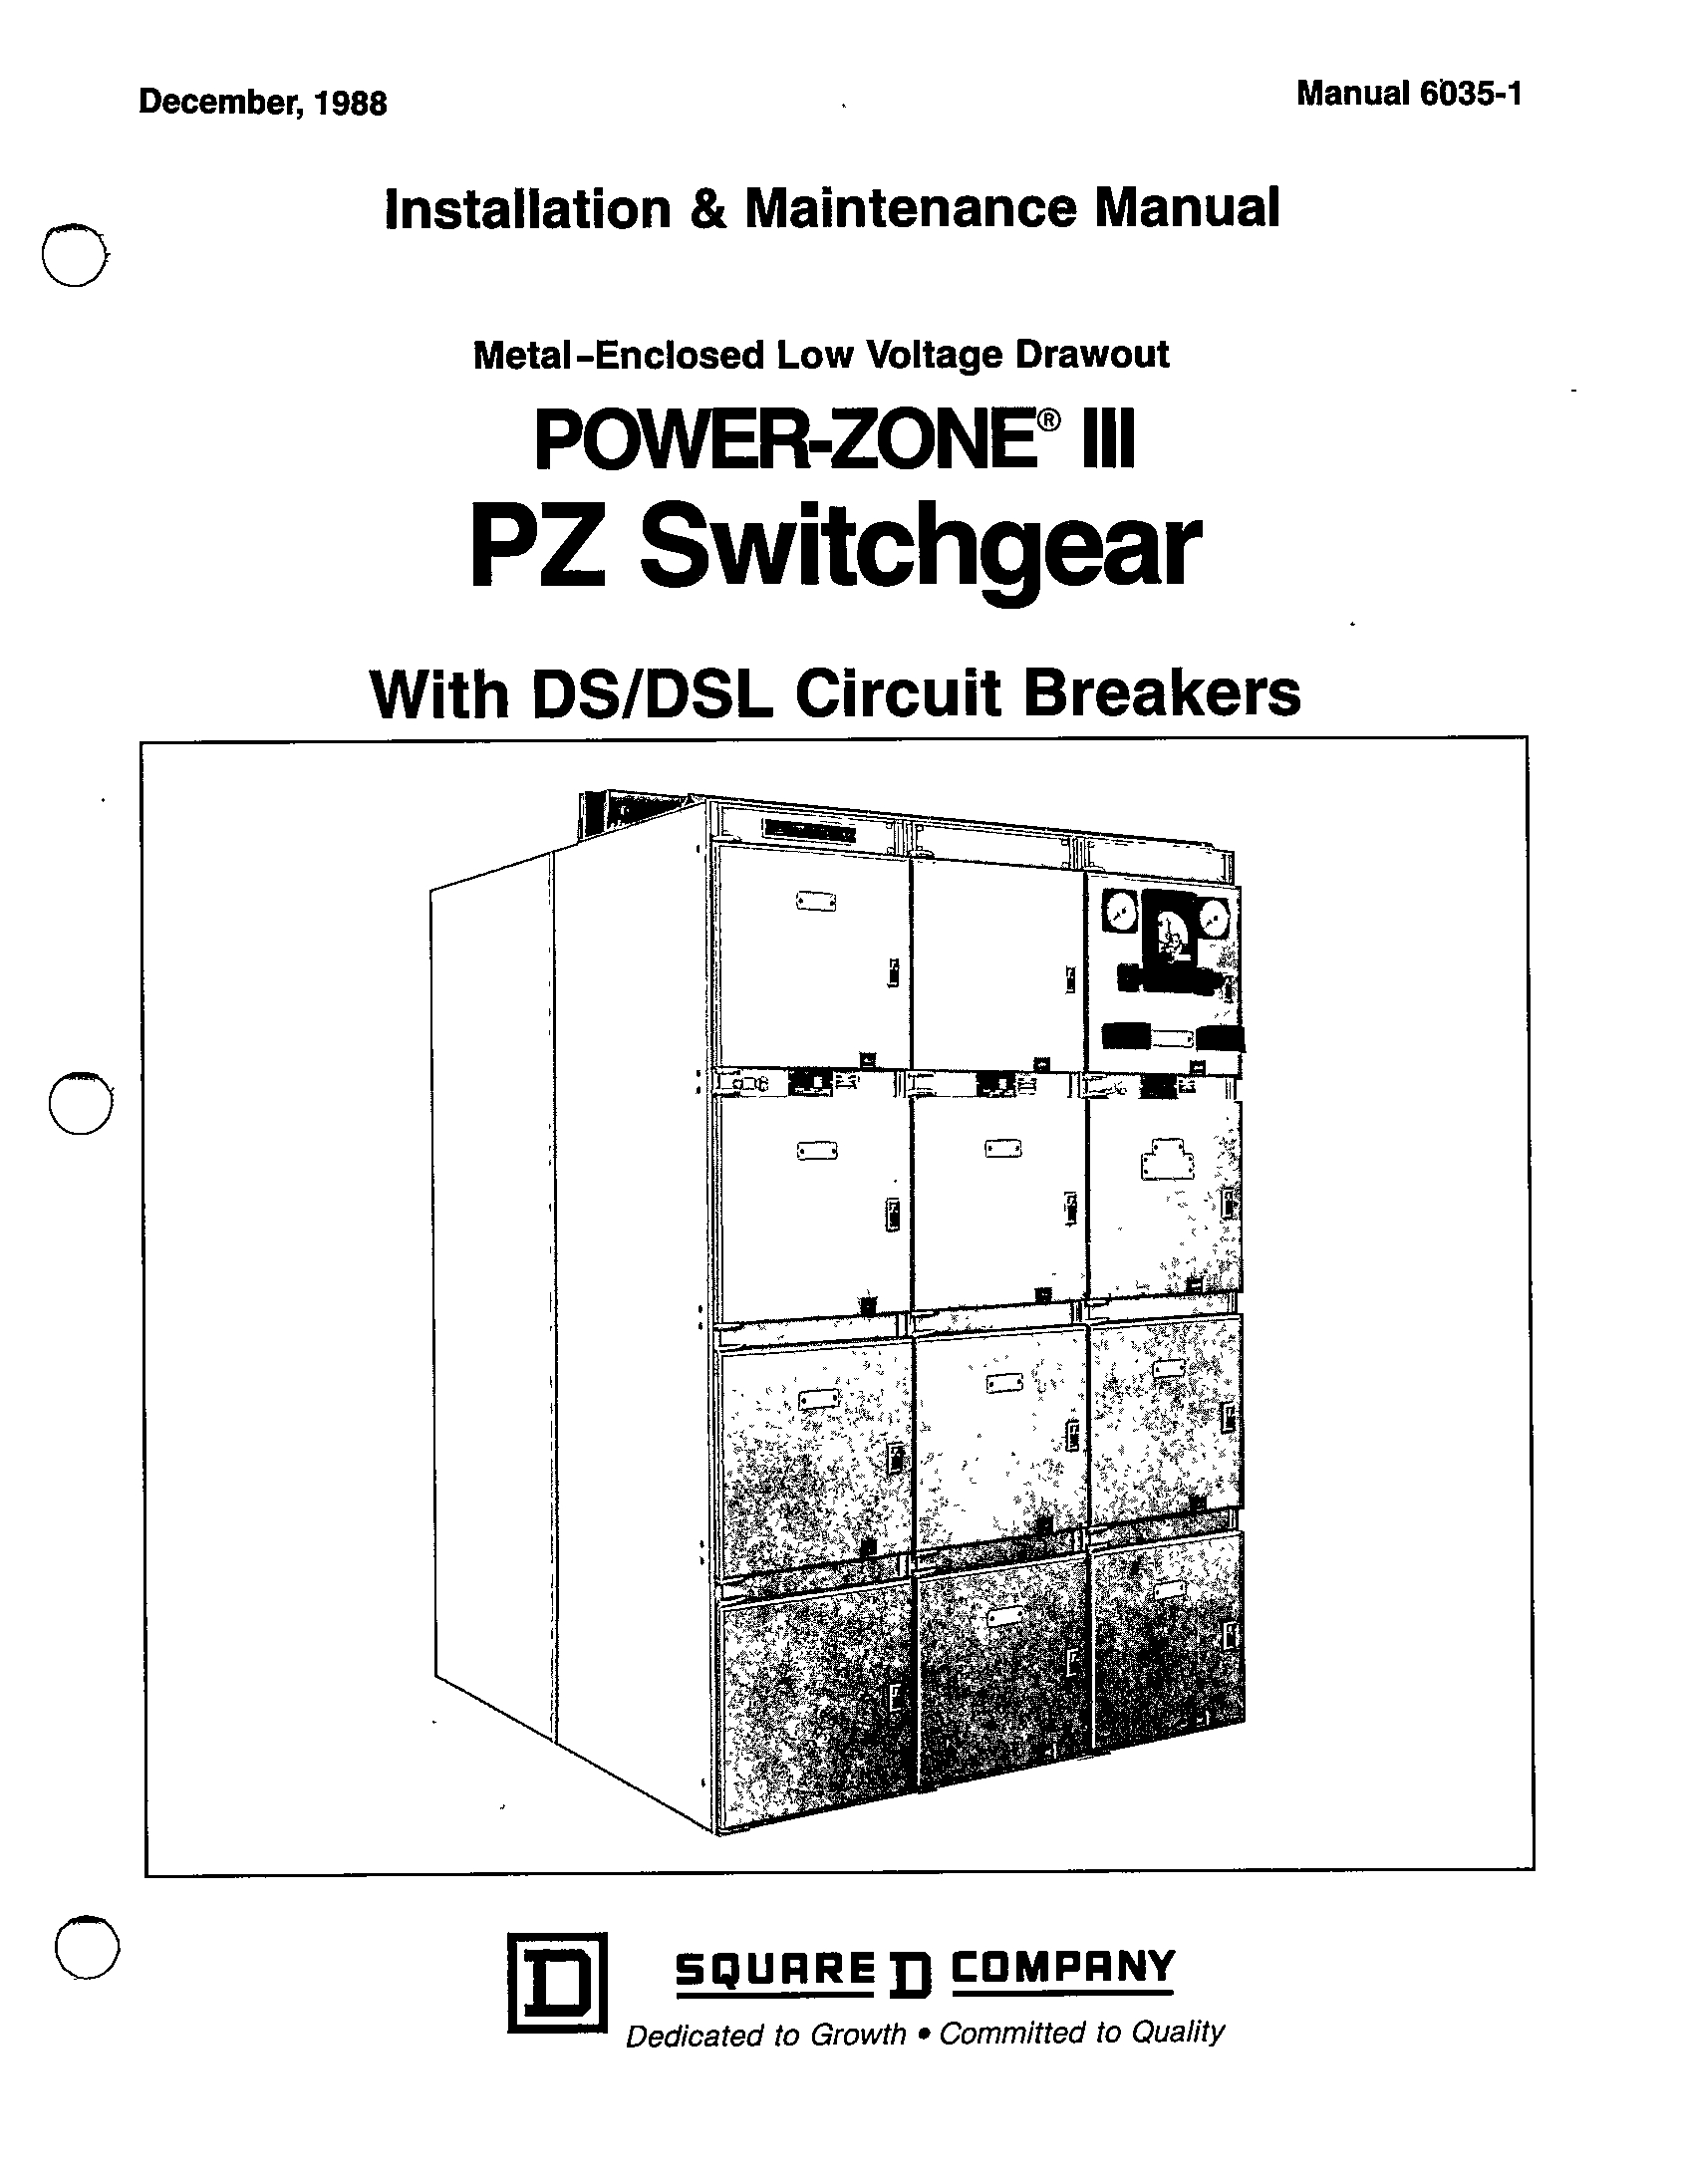 abb ai810 wiring diagram Download-6035 1 metal enclosed low vole drawout power zone iii pz switchgear with ds dsl circuit 11-c